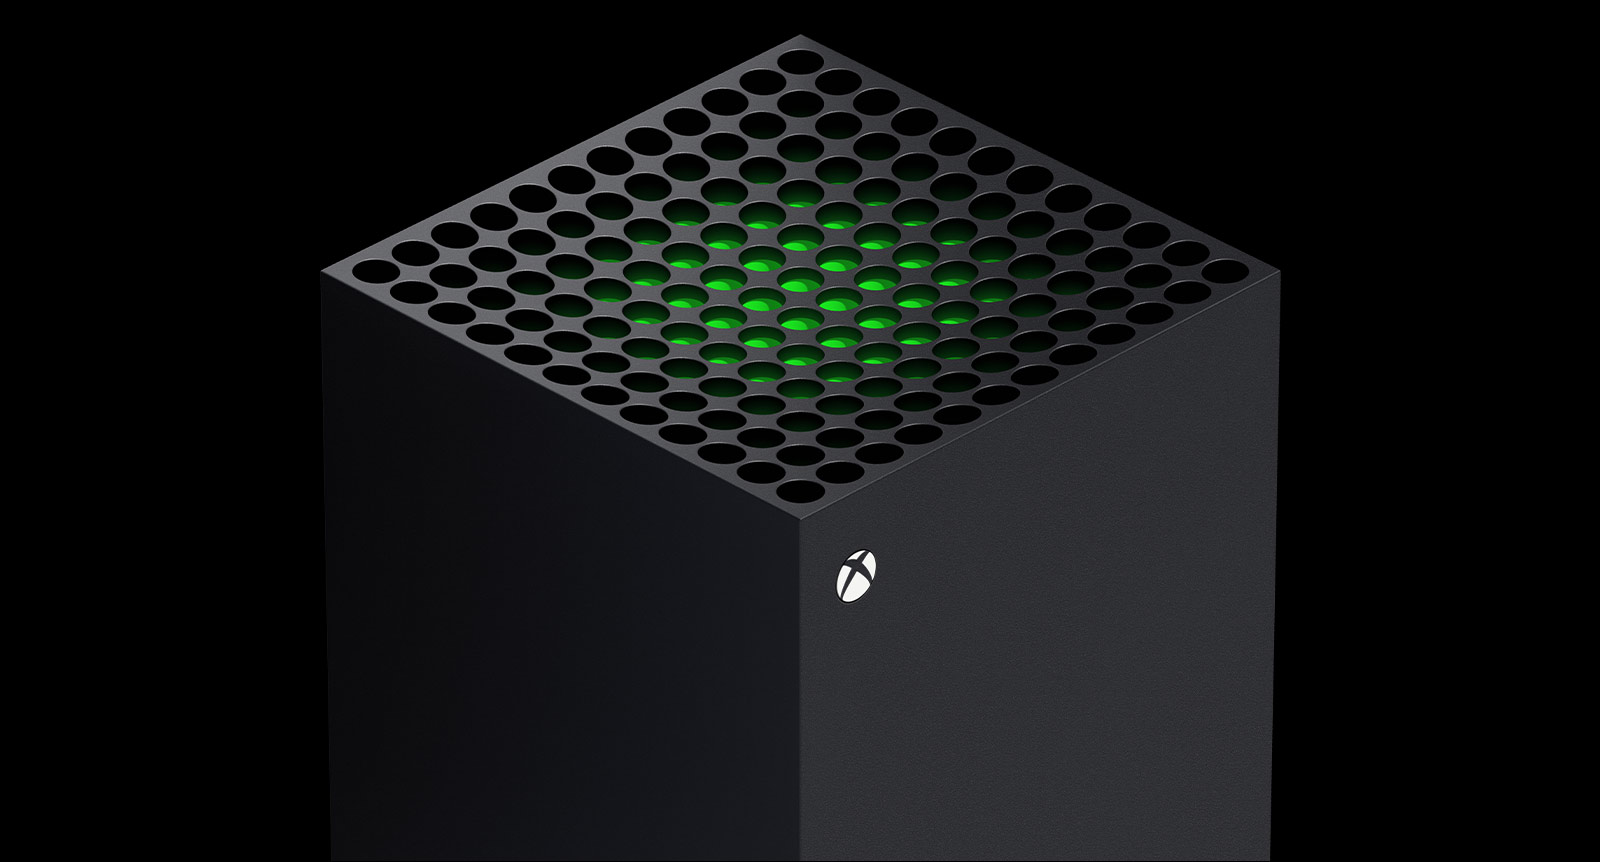 The green top of the Xbox Series X console